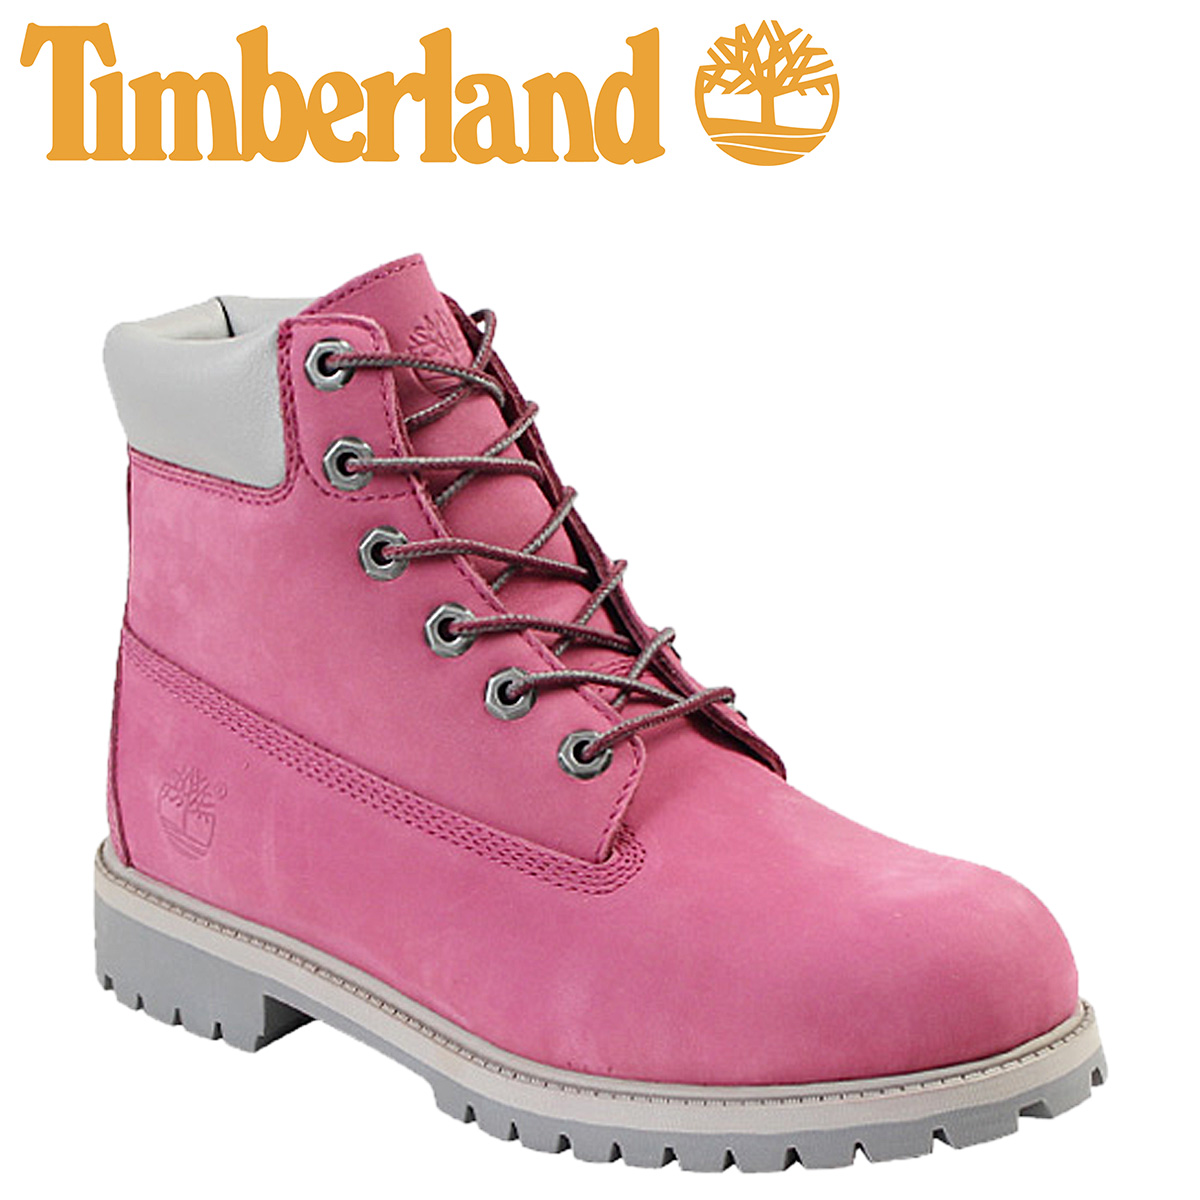 [SOLD OUT] Timberland Timberland 6 inches premium waterproof boots violet  42934 Youth Premium Wataerproof Boot leather youth kids child GS Lady's